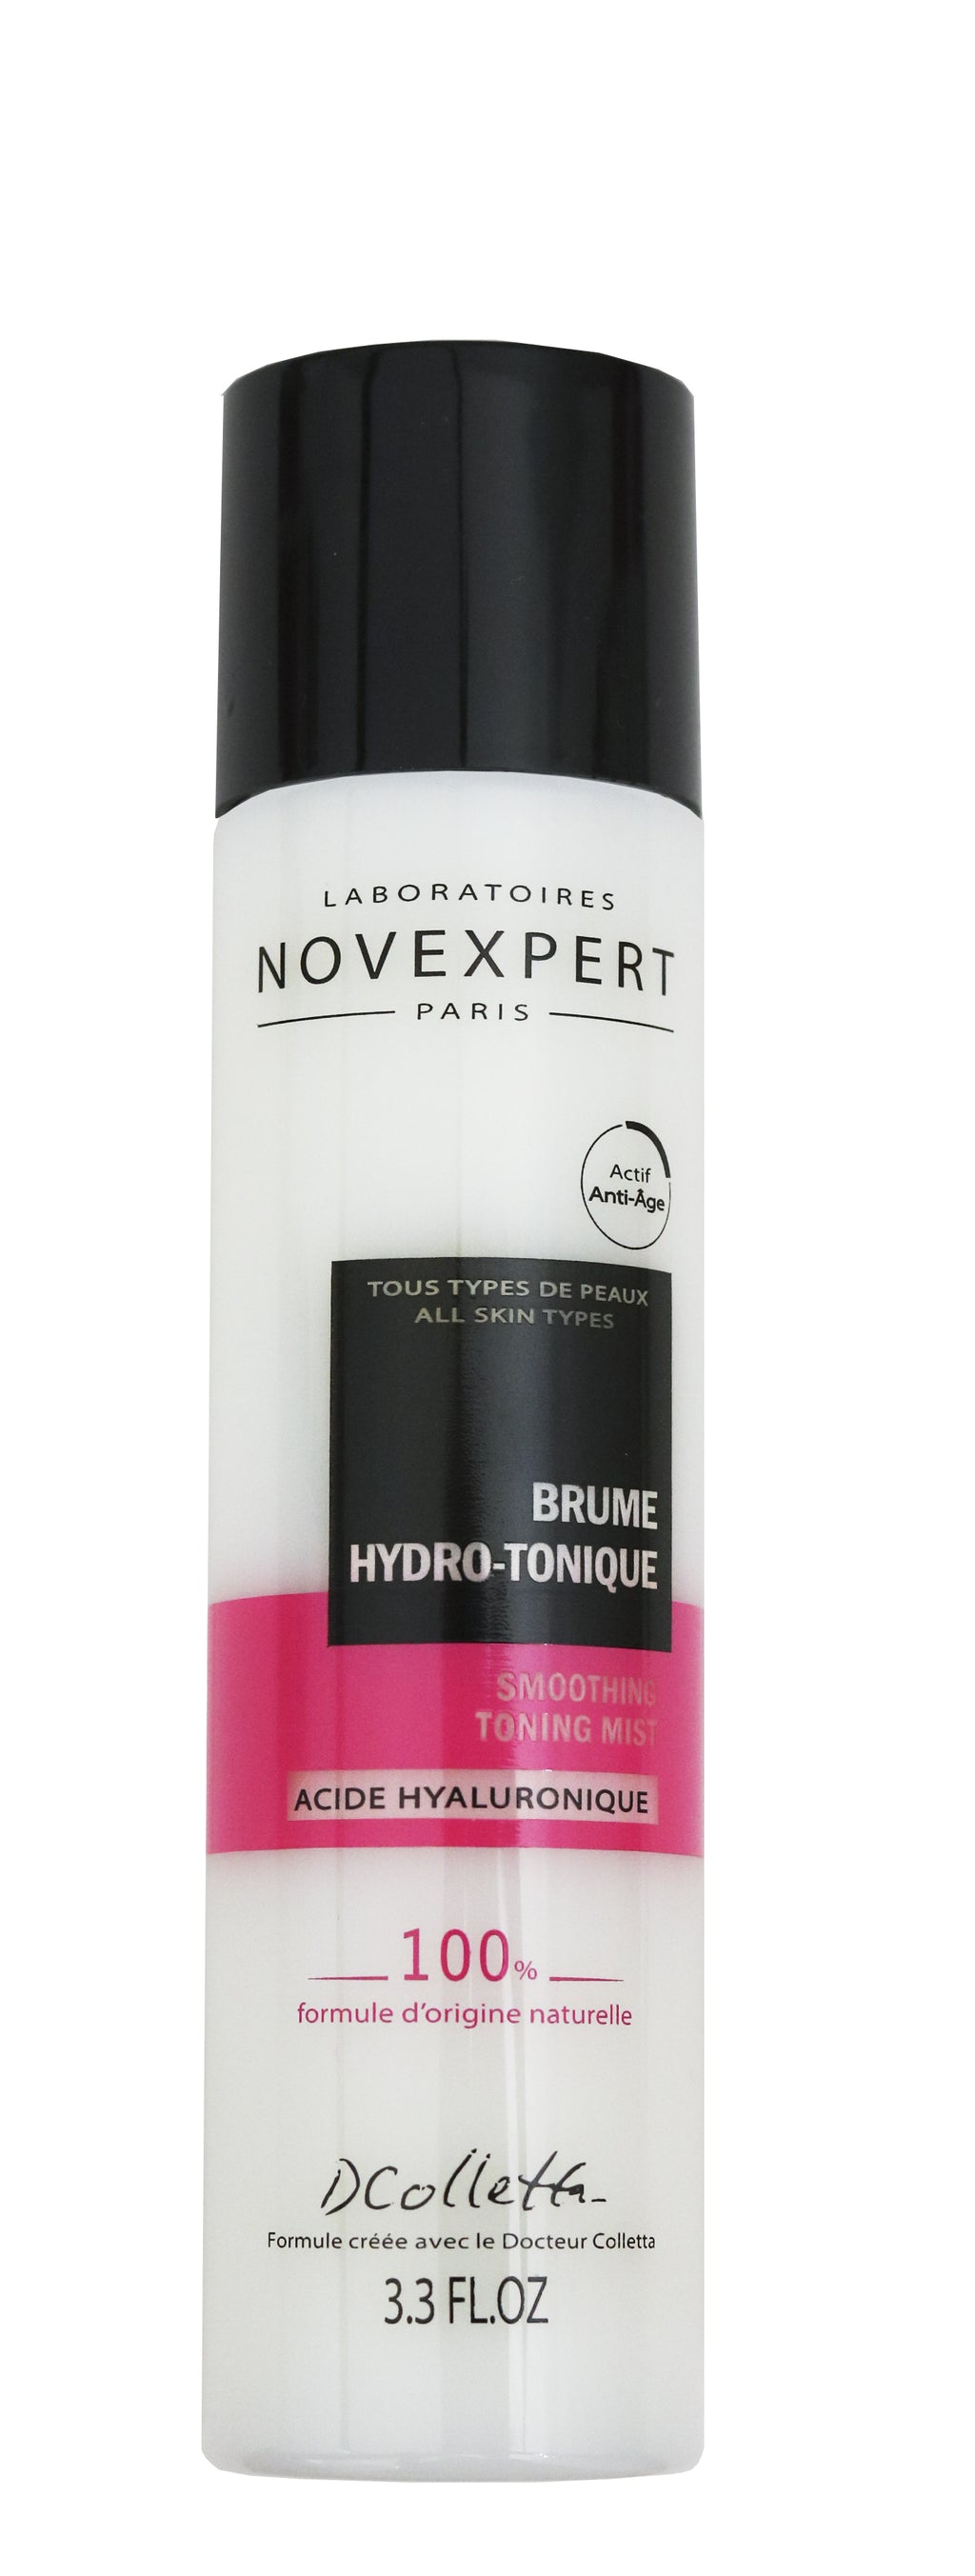 Novexpert Smoothing Toning Mist with Hyaluronic Acid – 100mlCosmetics Online IE